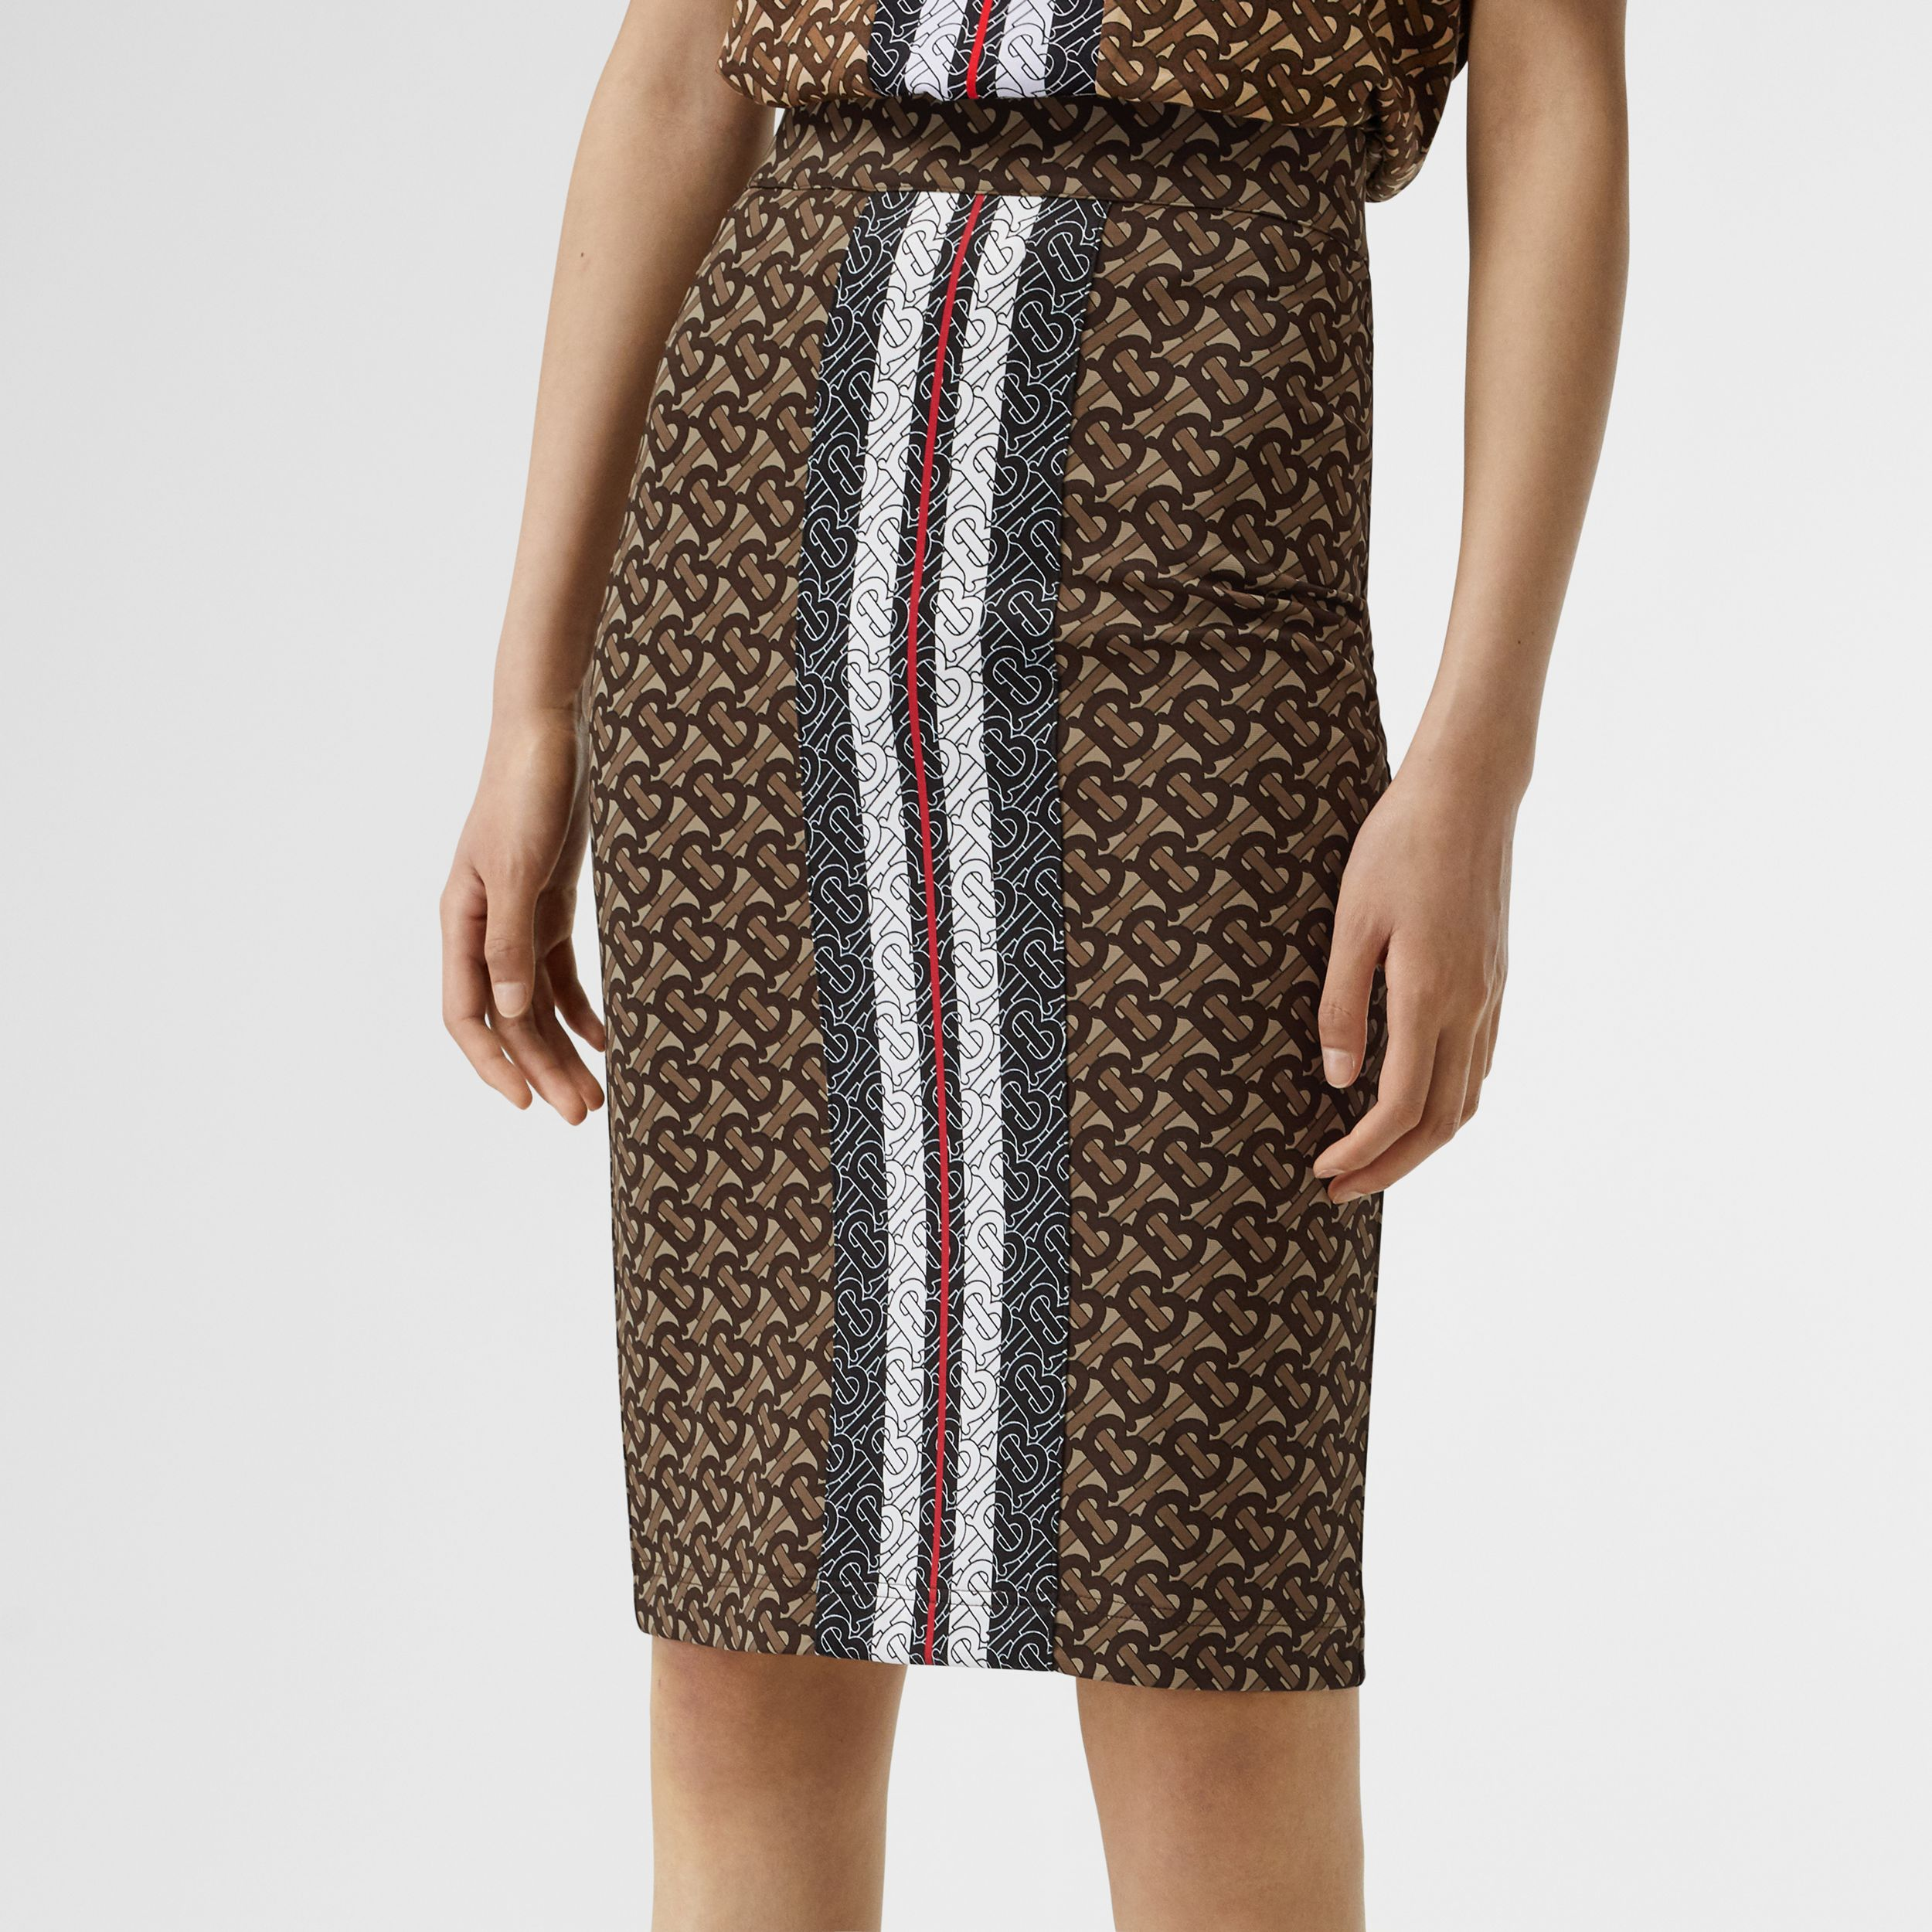 Monogram Stripe Print Stretch Jersey Pencil Skirt in Bridle Brown - Women | Burberry Singapore - 2